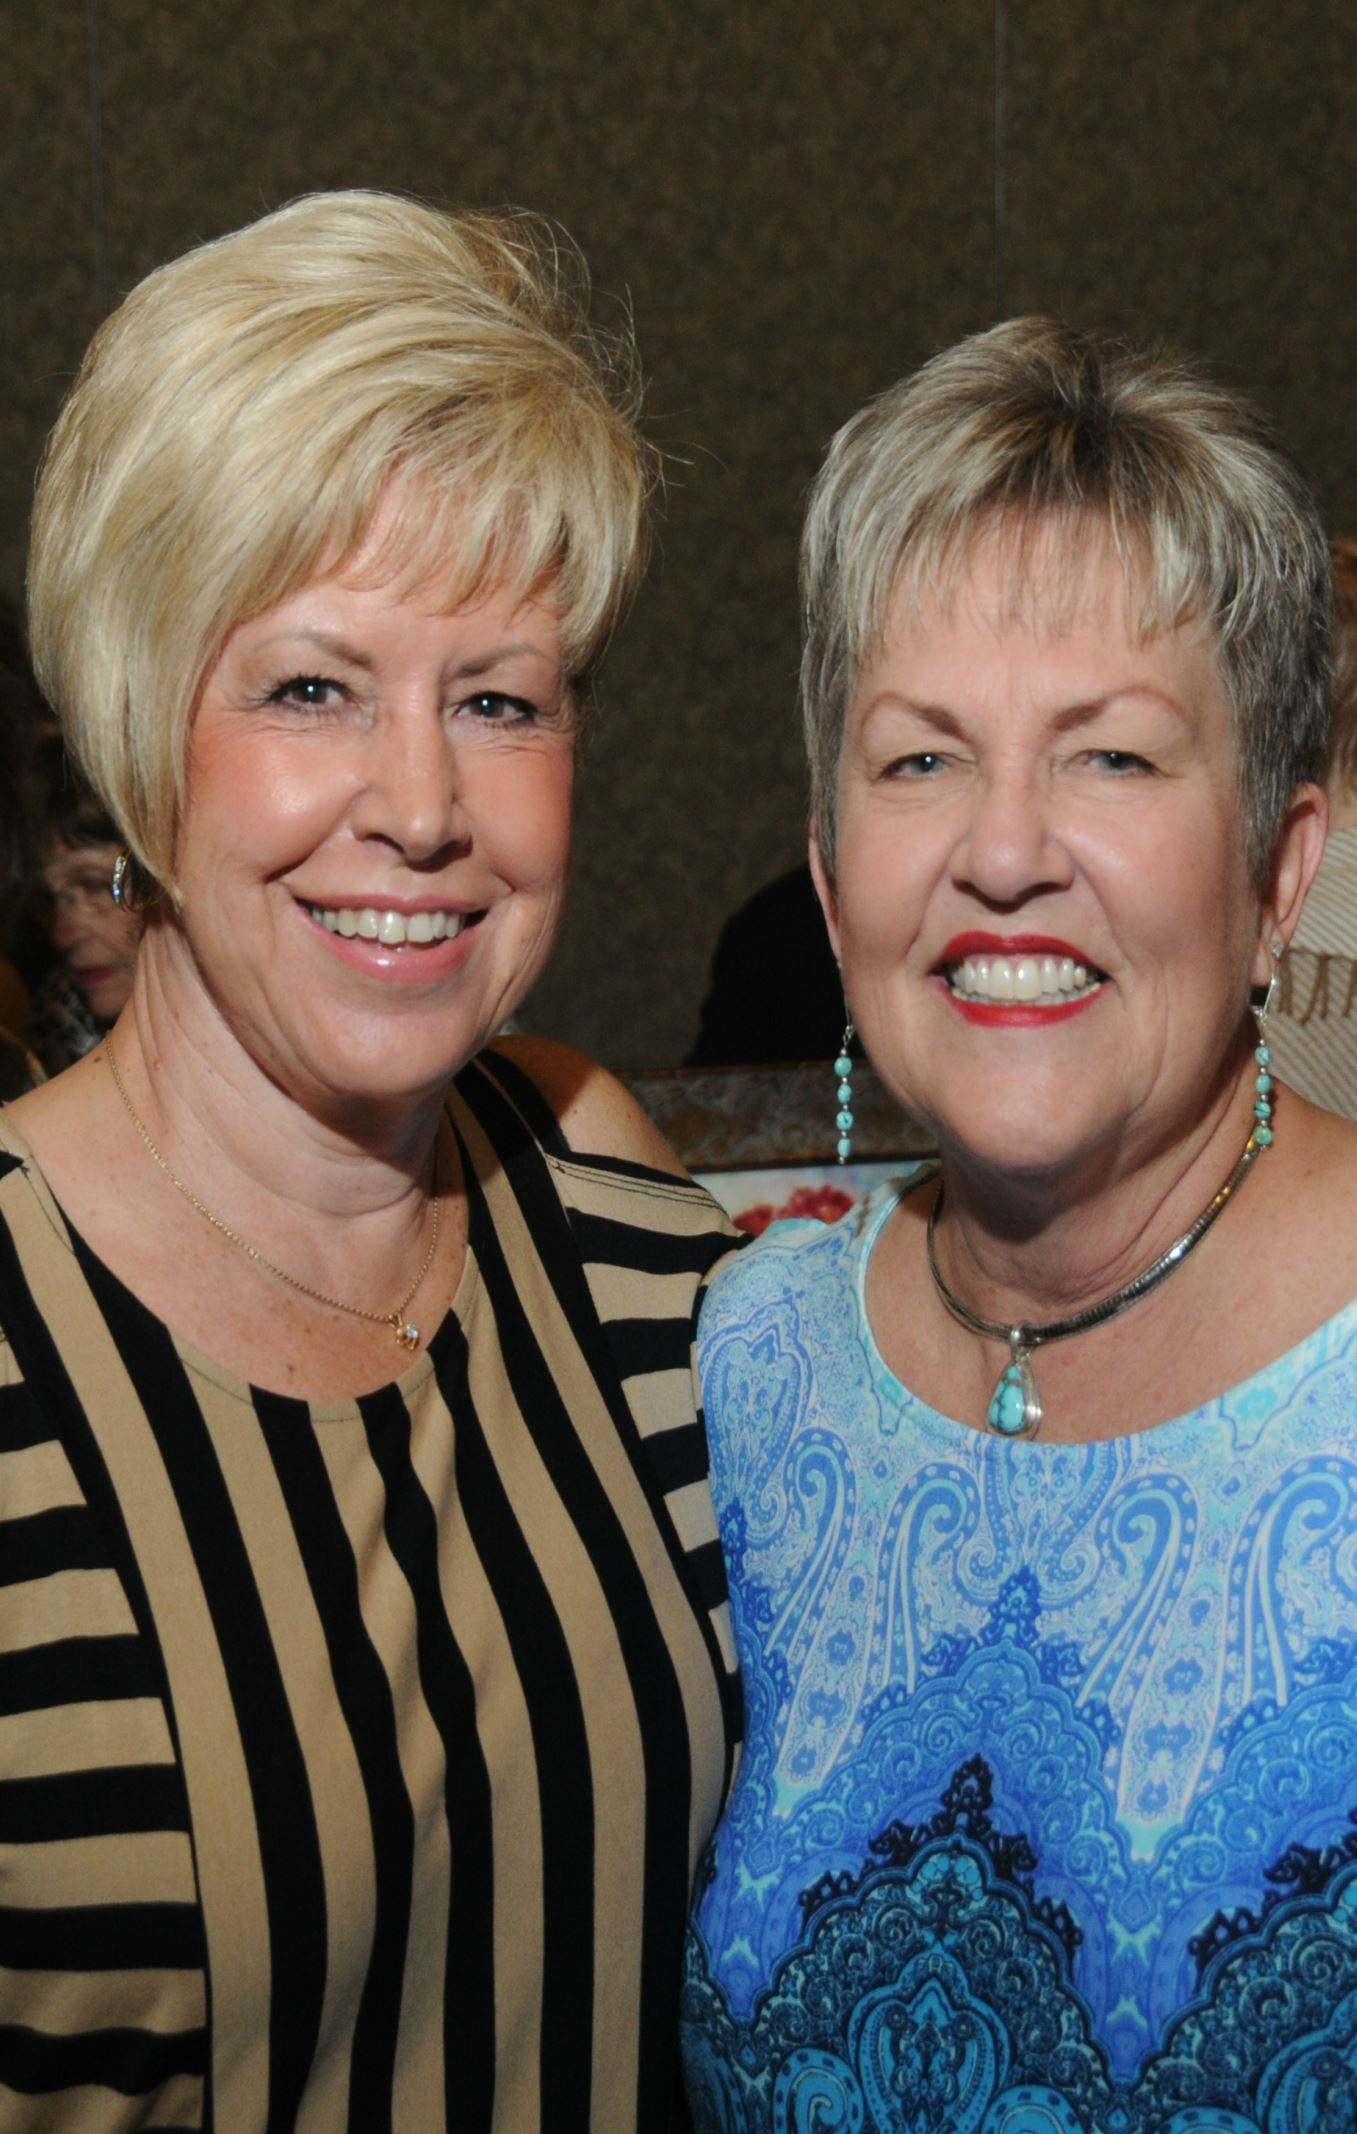 Linda Conrad and Janet Ellison at SMMA's 2016 Fall Fashion Show